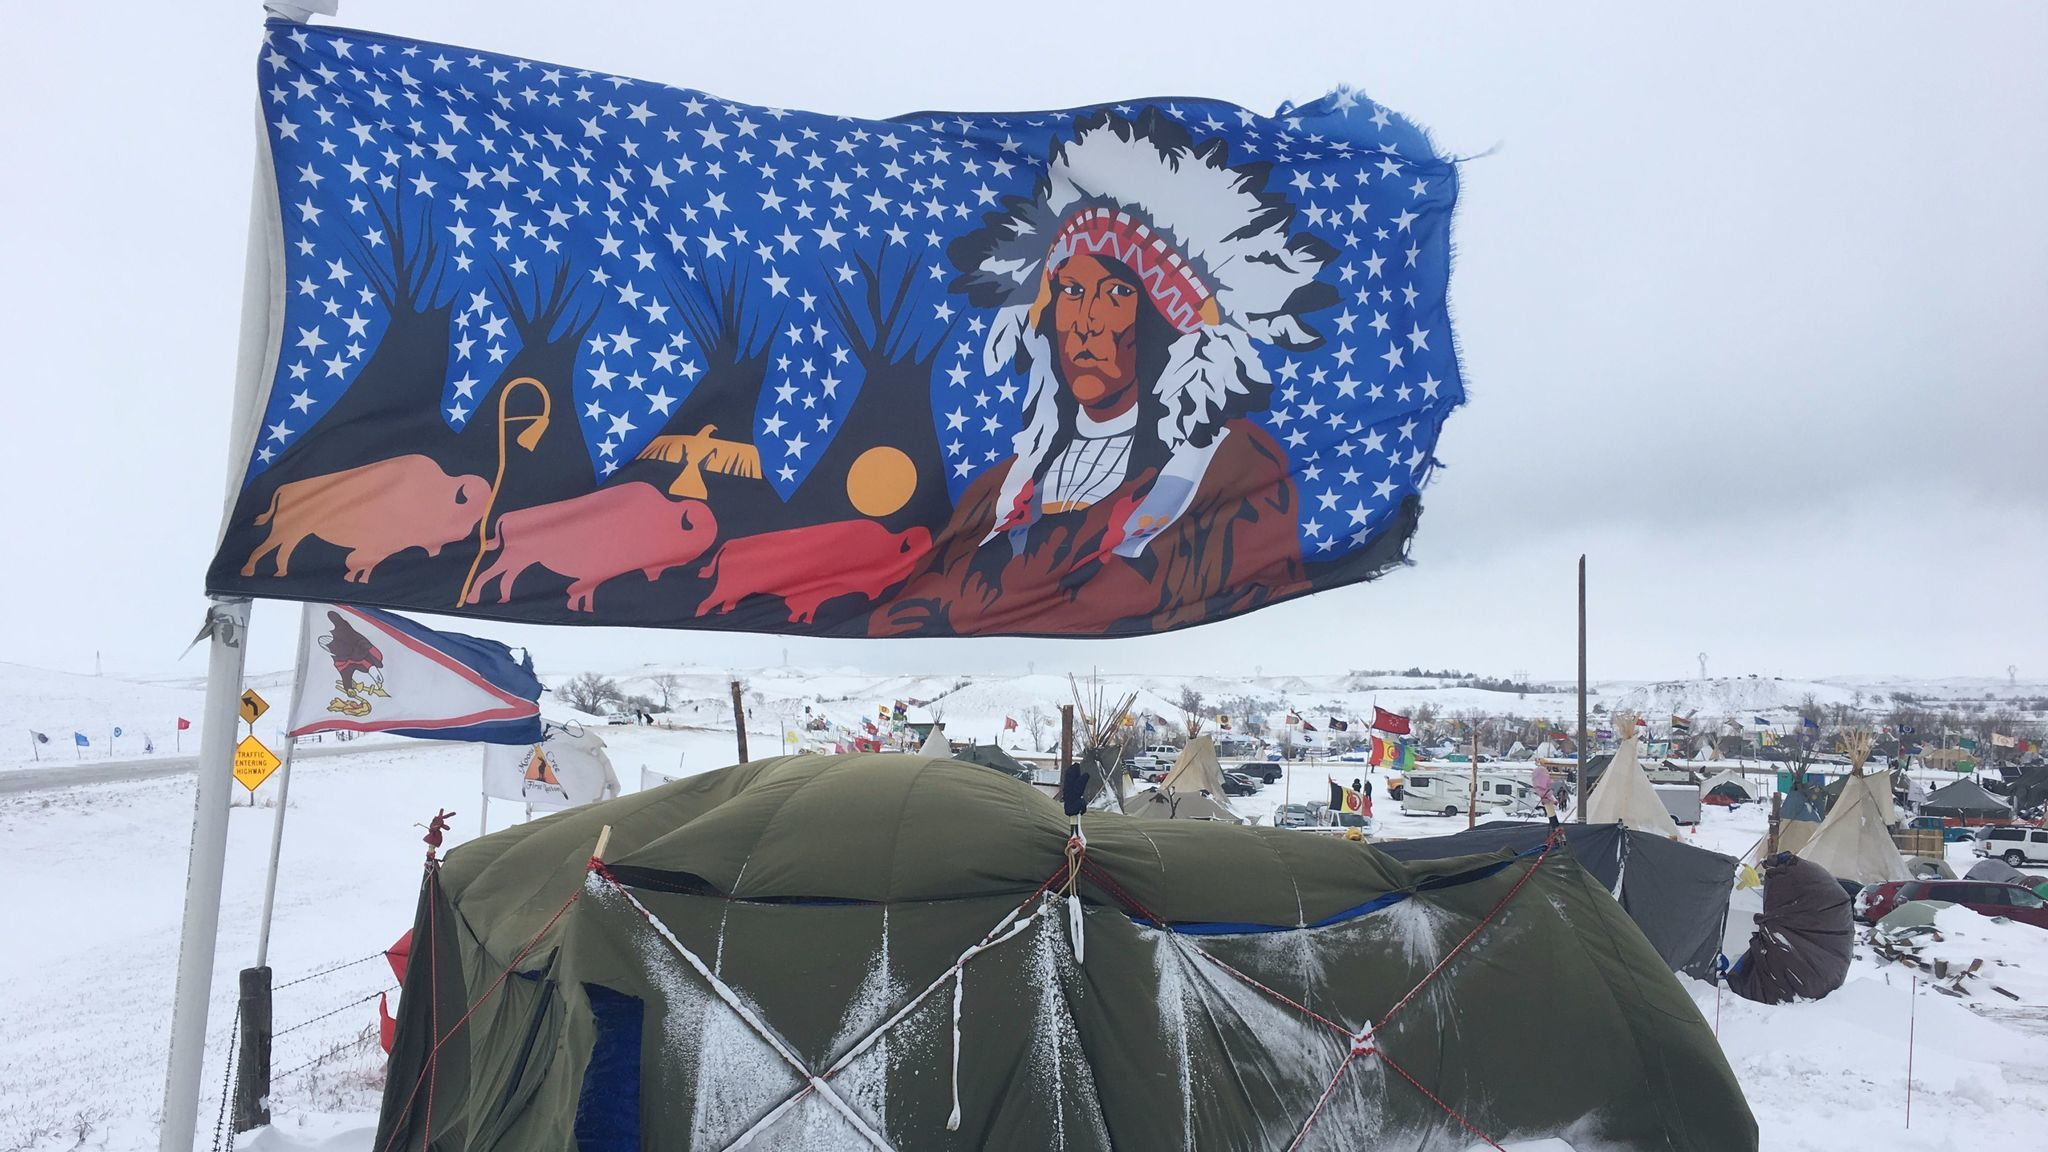 A protest camp at Standing Rock dusted in snow. (Doug McLean)